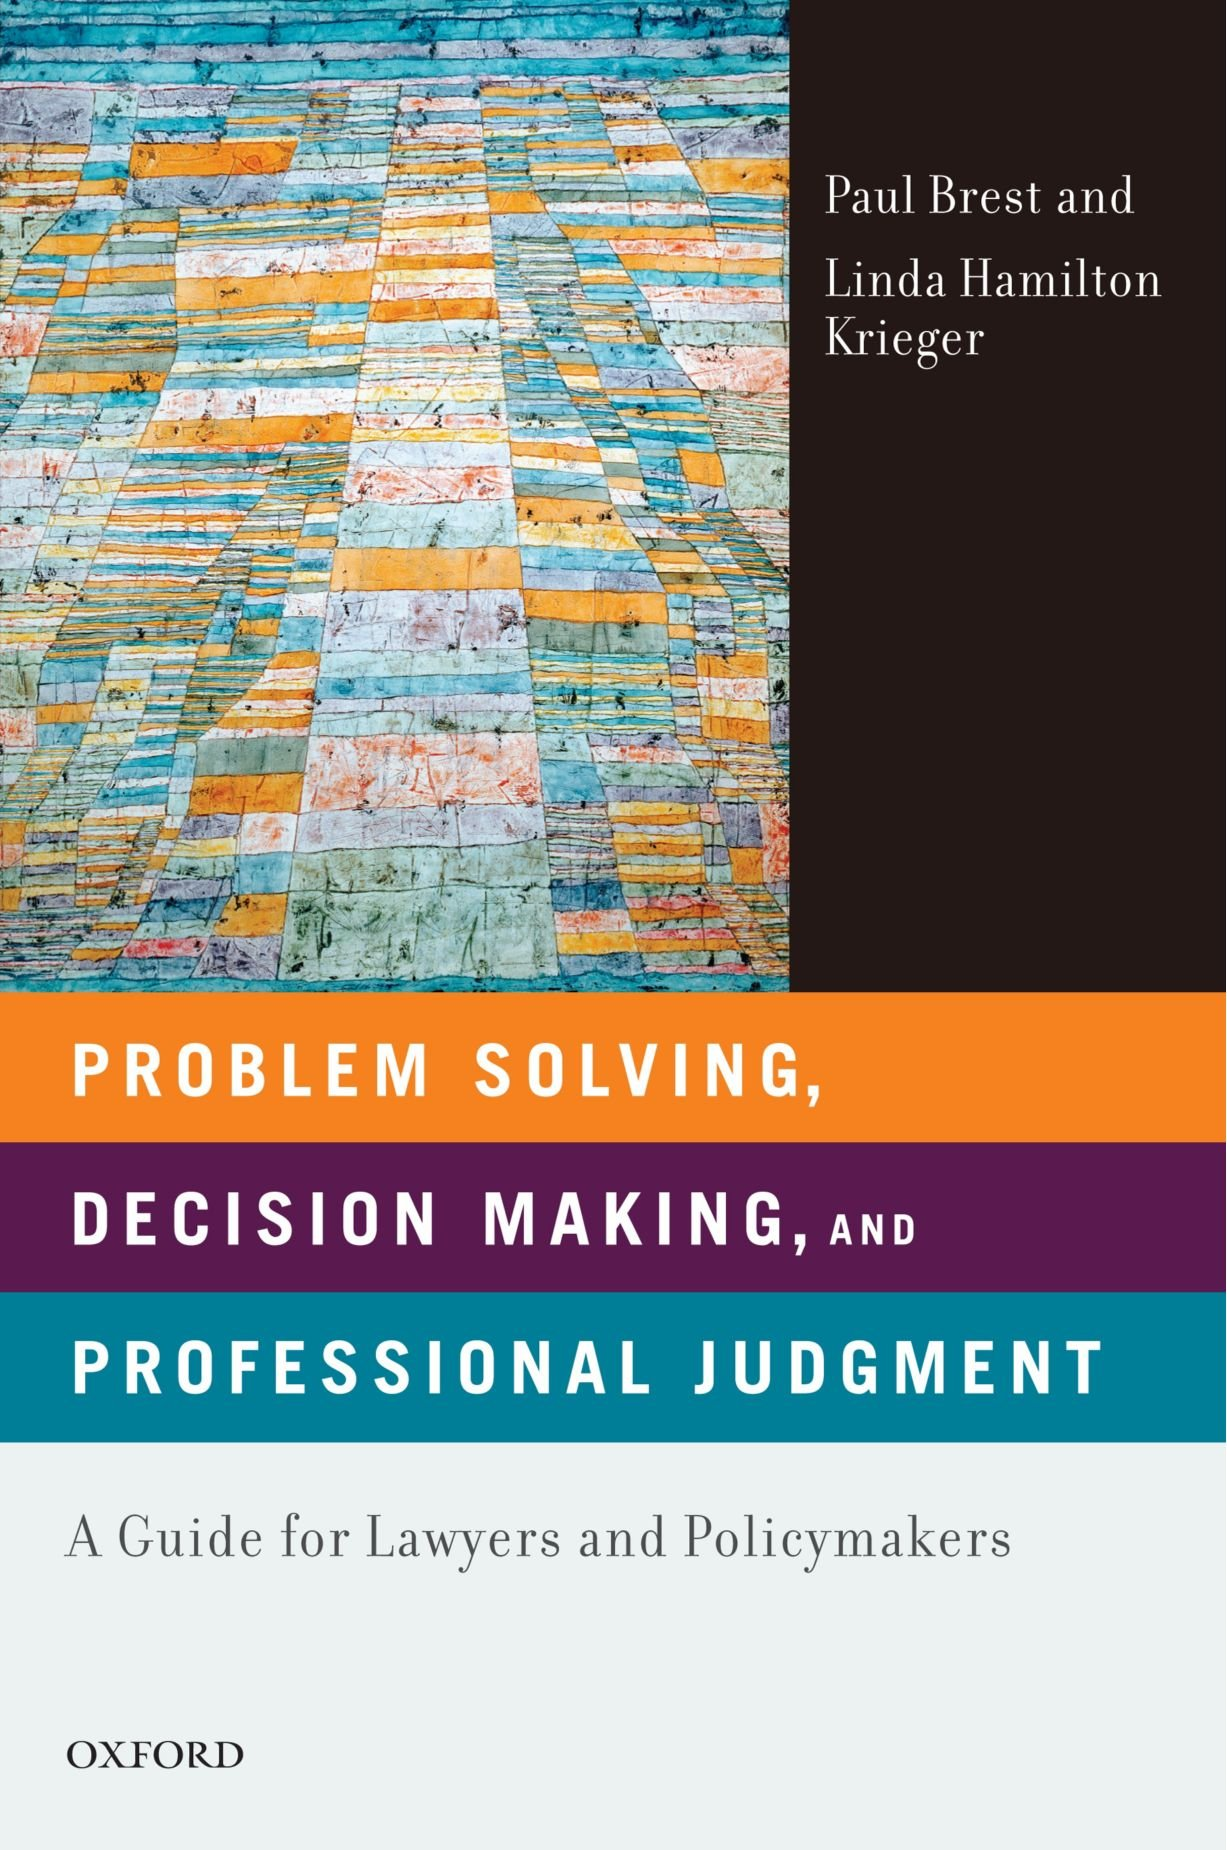 Problem Solving, Decision Making, and Professional Judgment: A Guide for Lawyers and Policymakers by Oxford University Press